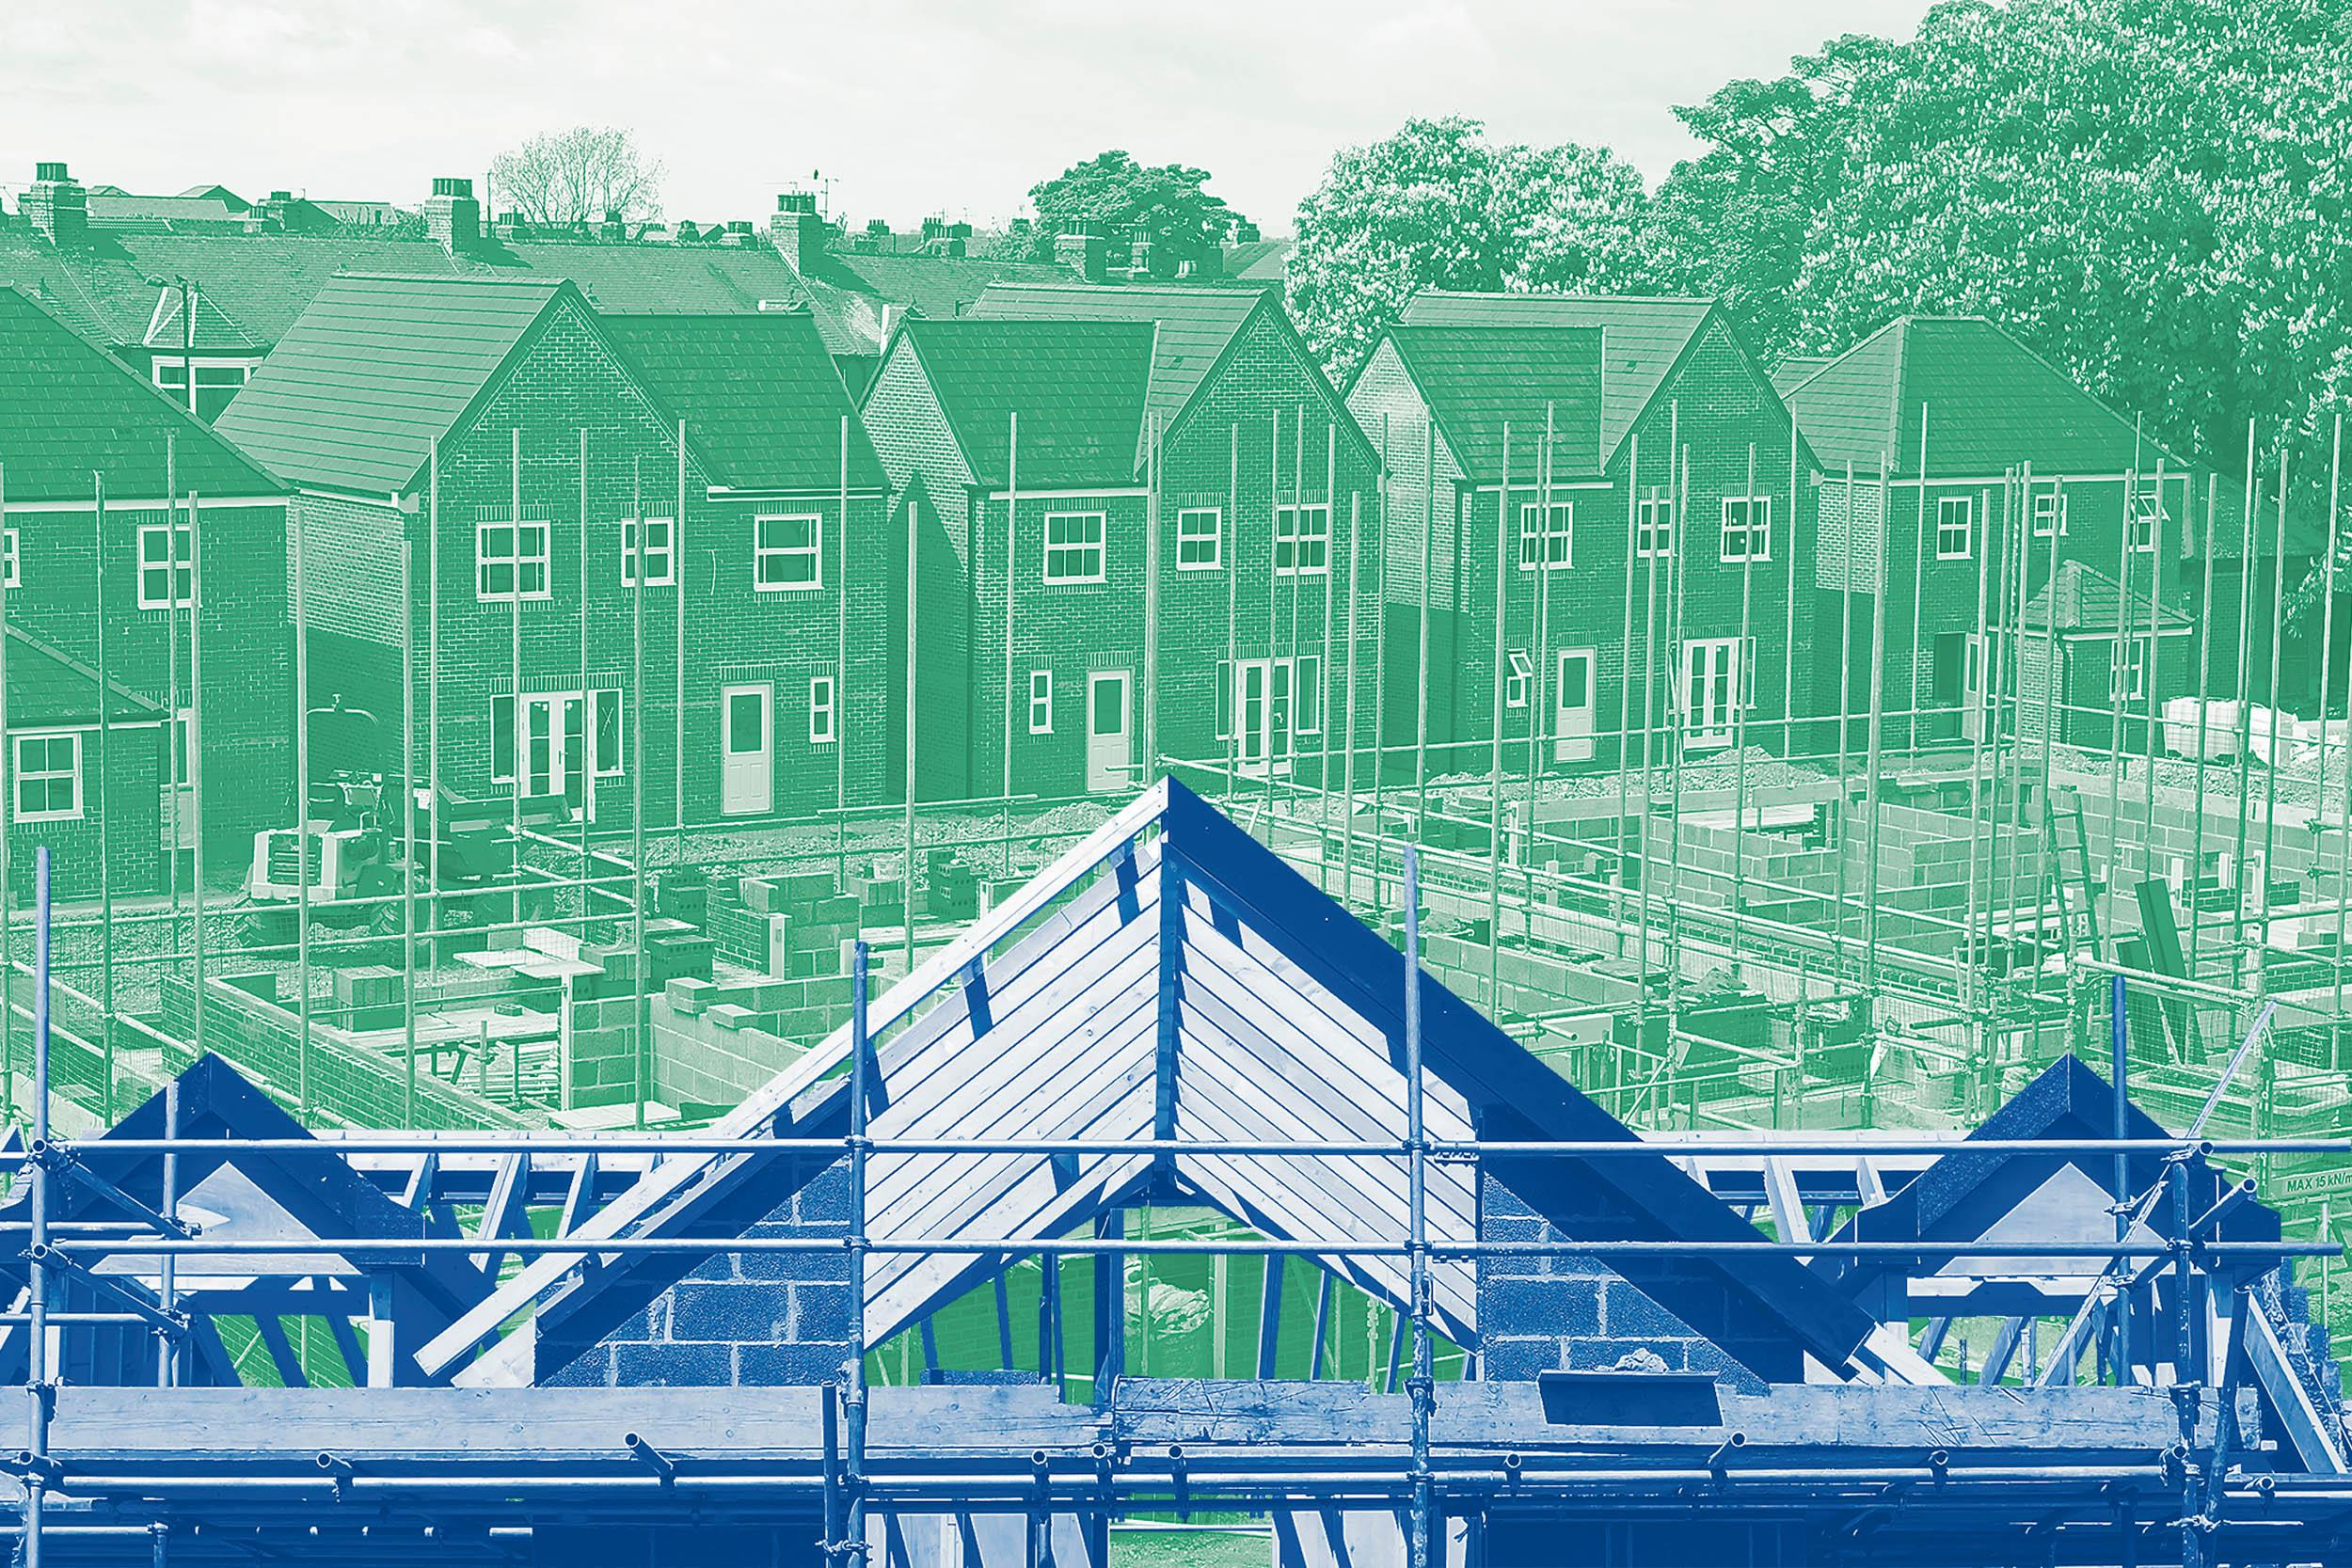 289,000 new homes estimated to reach the market with snagging defects in 2021